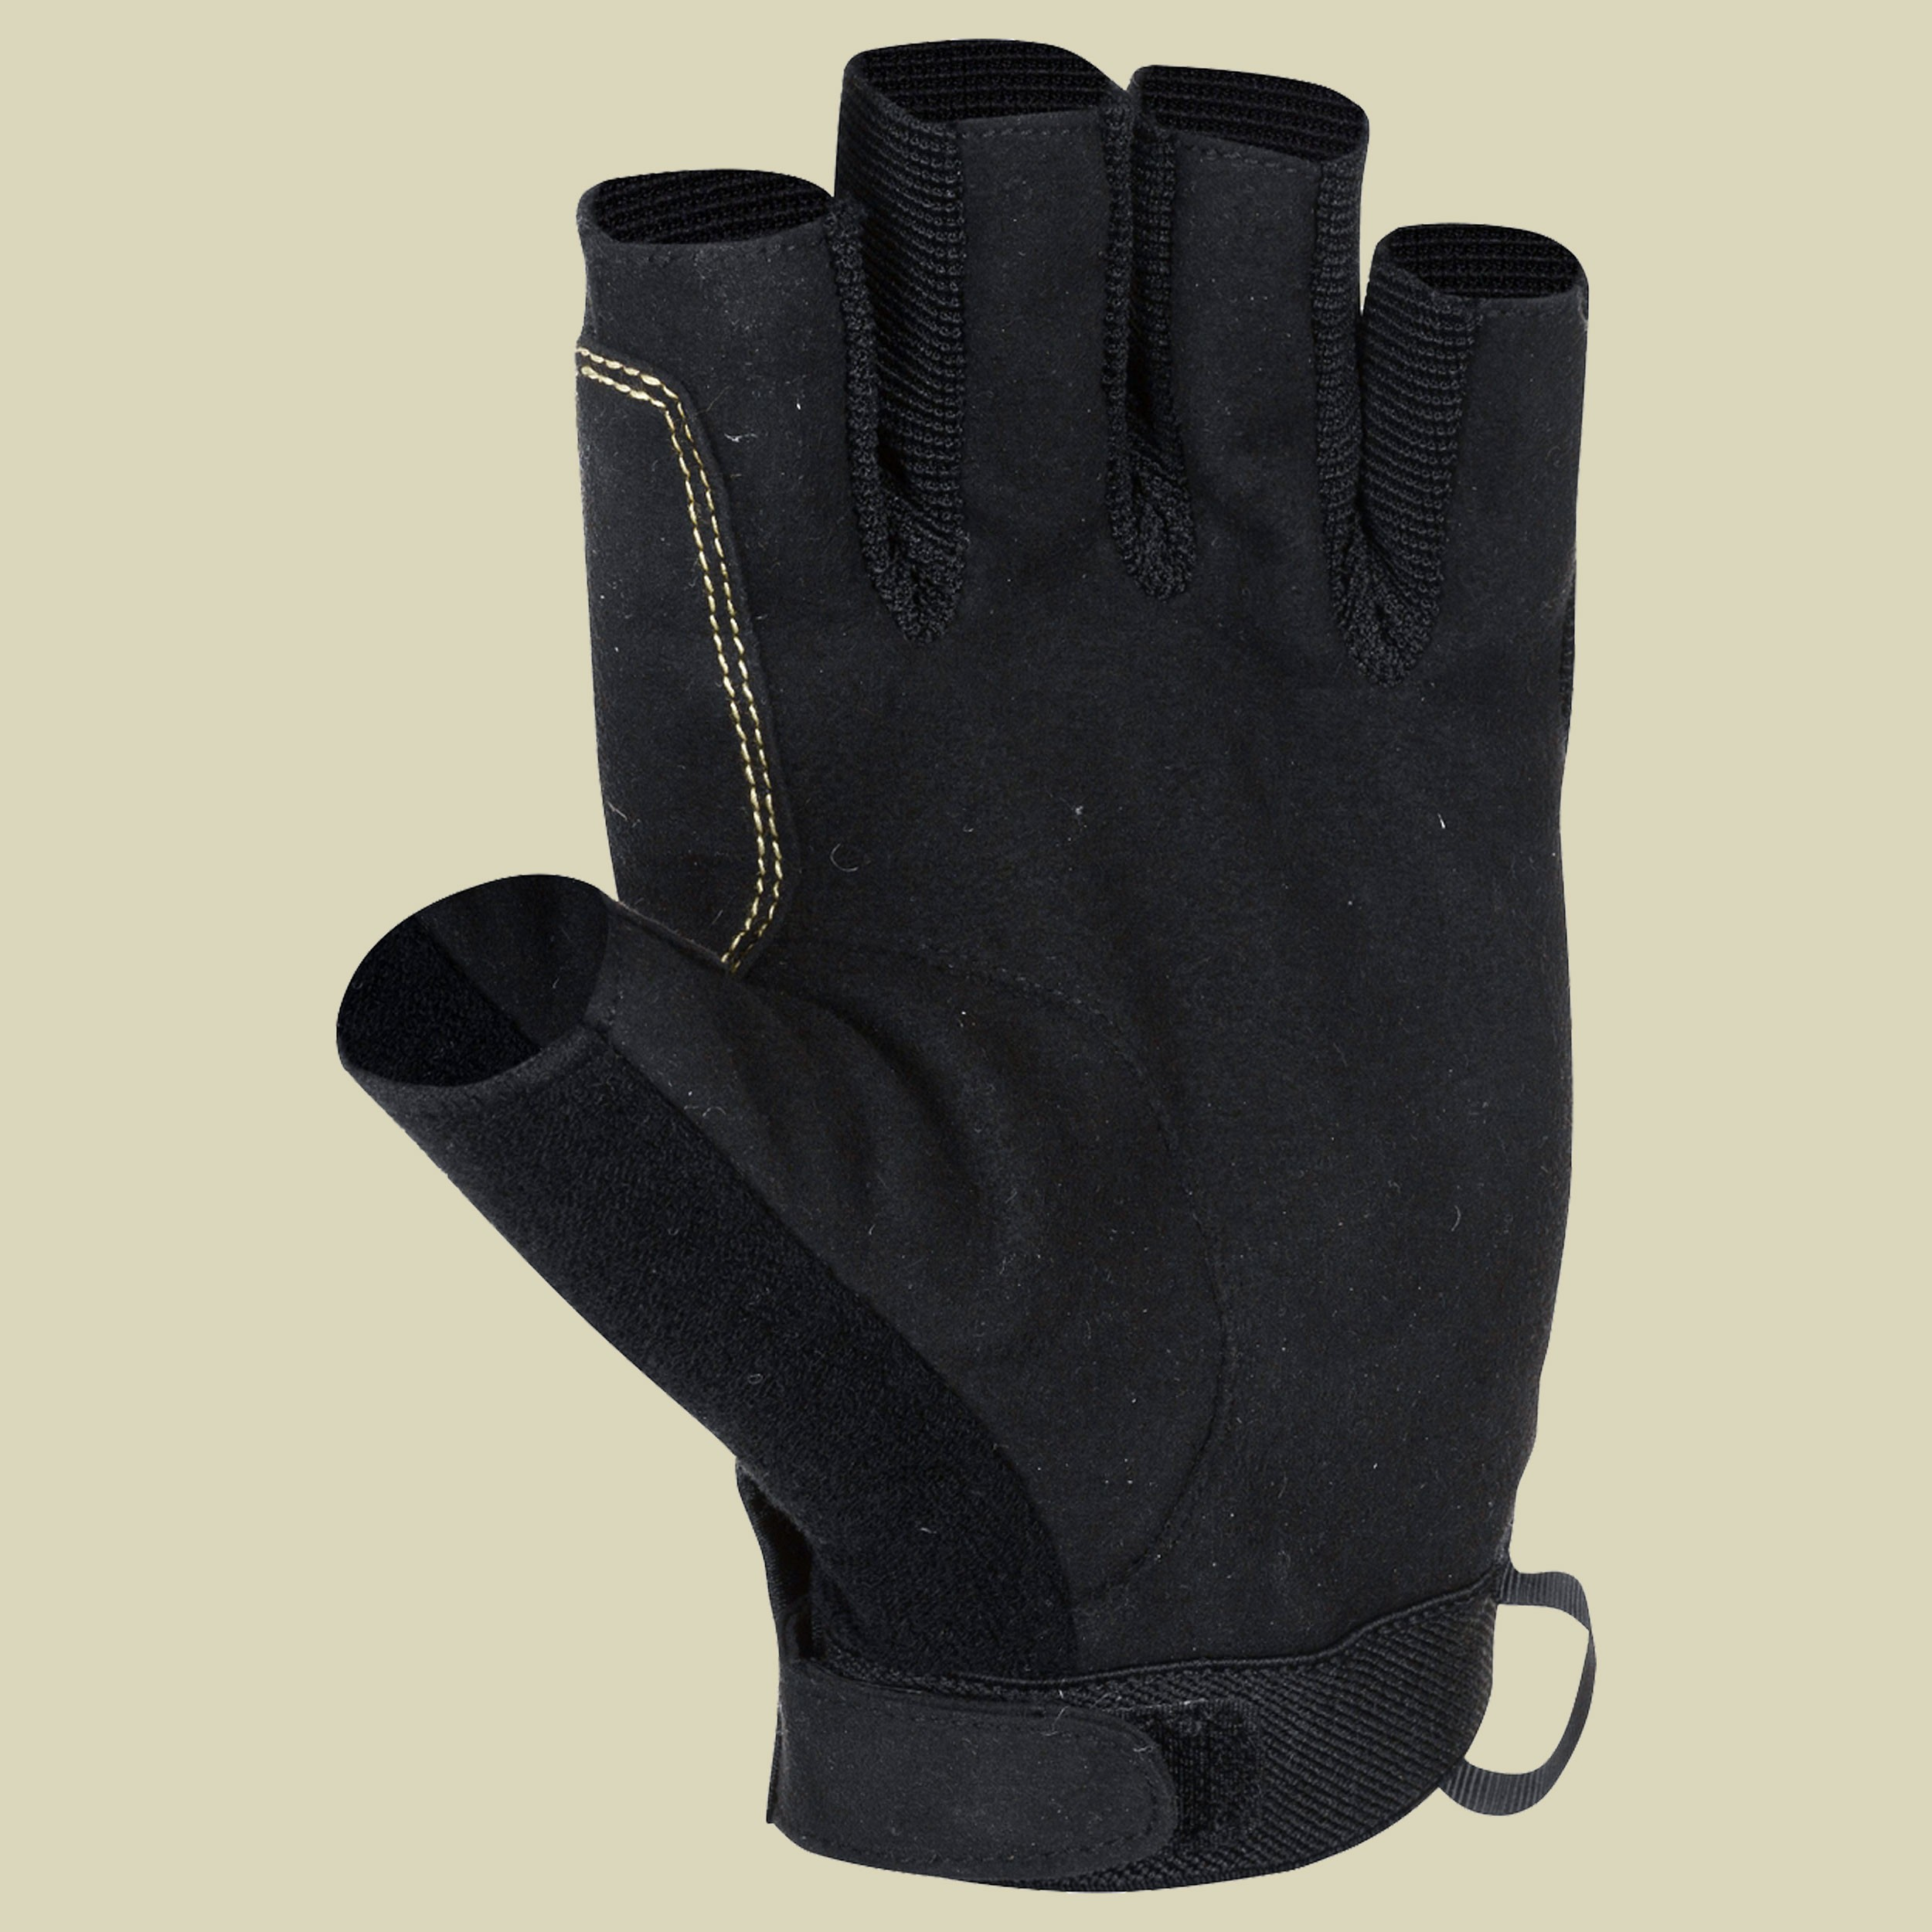 Steel VF 2.0 DST Glove